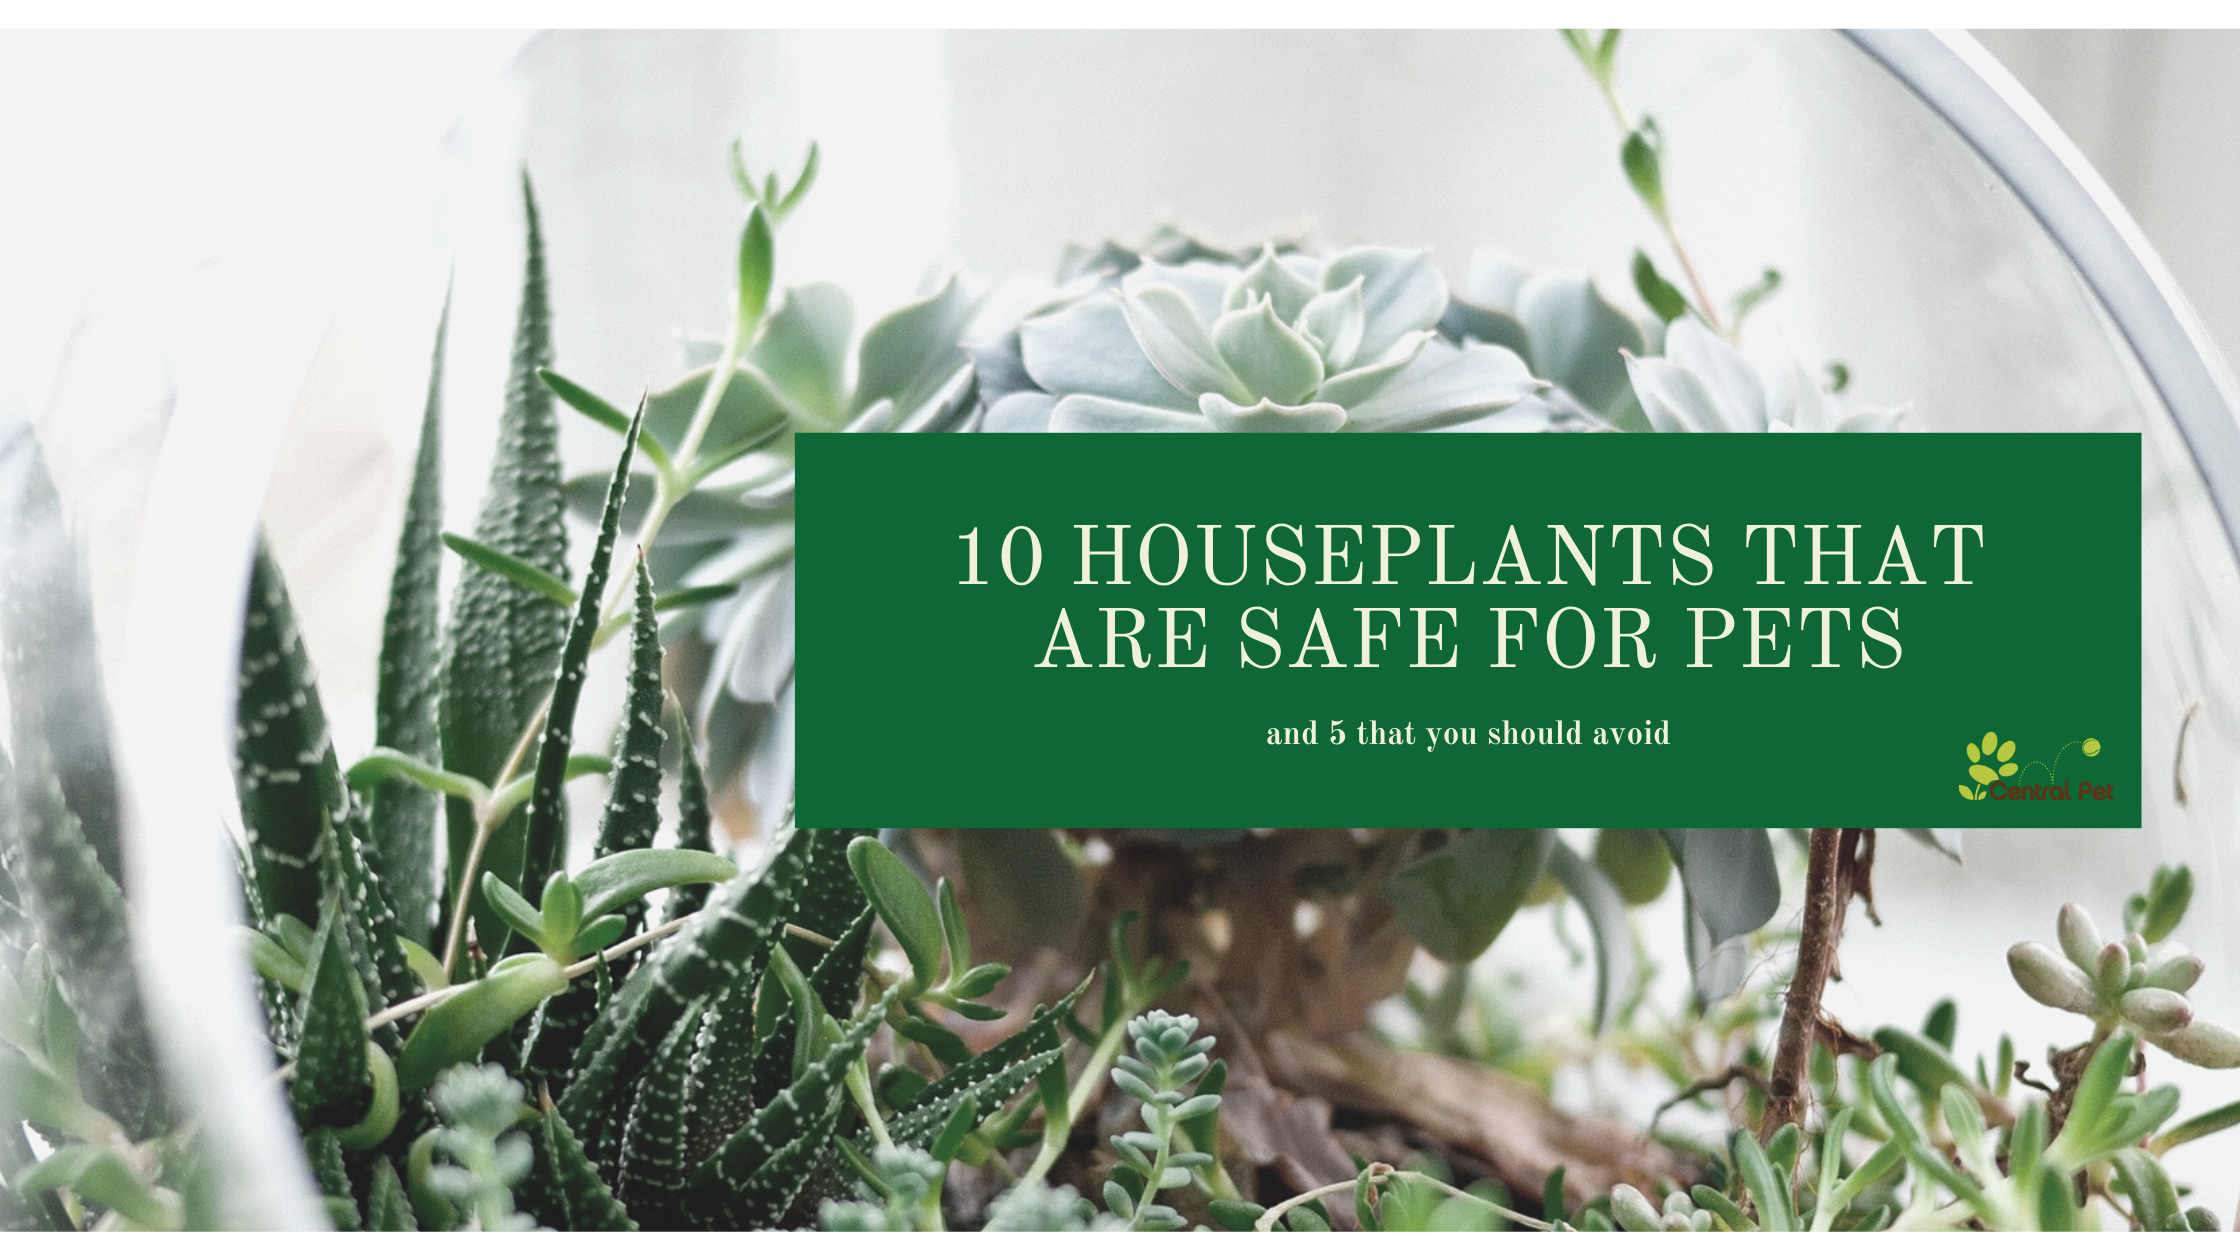 10 houseplants that are safe for pets